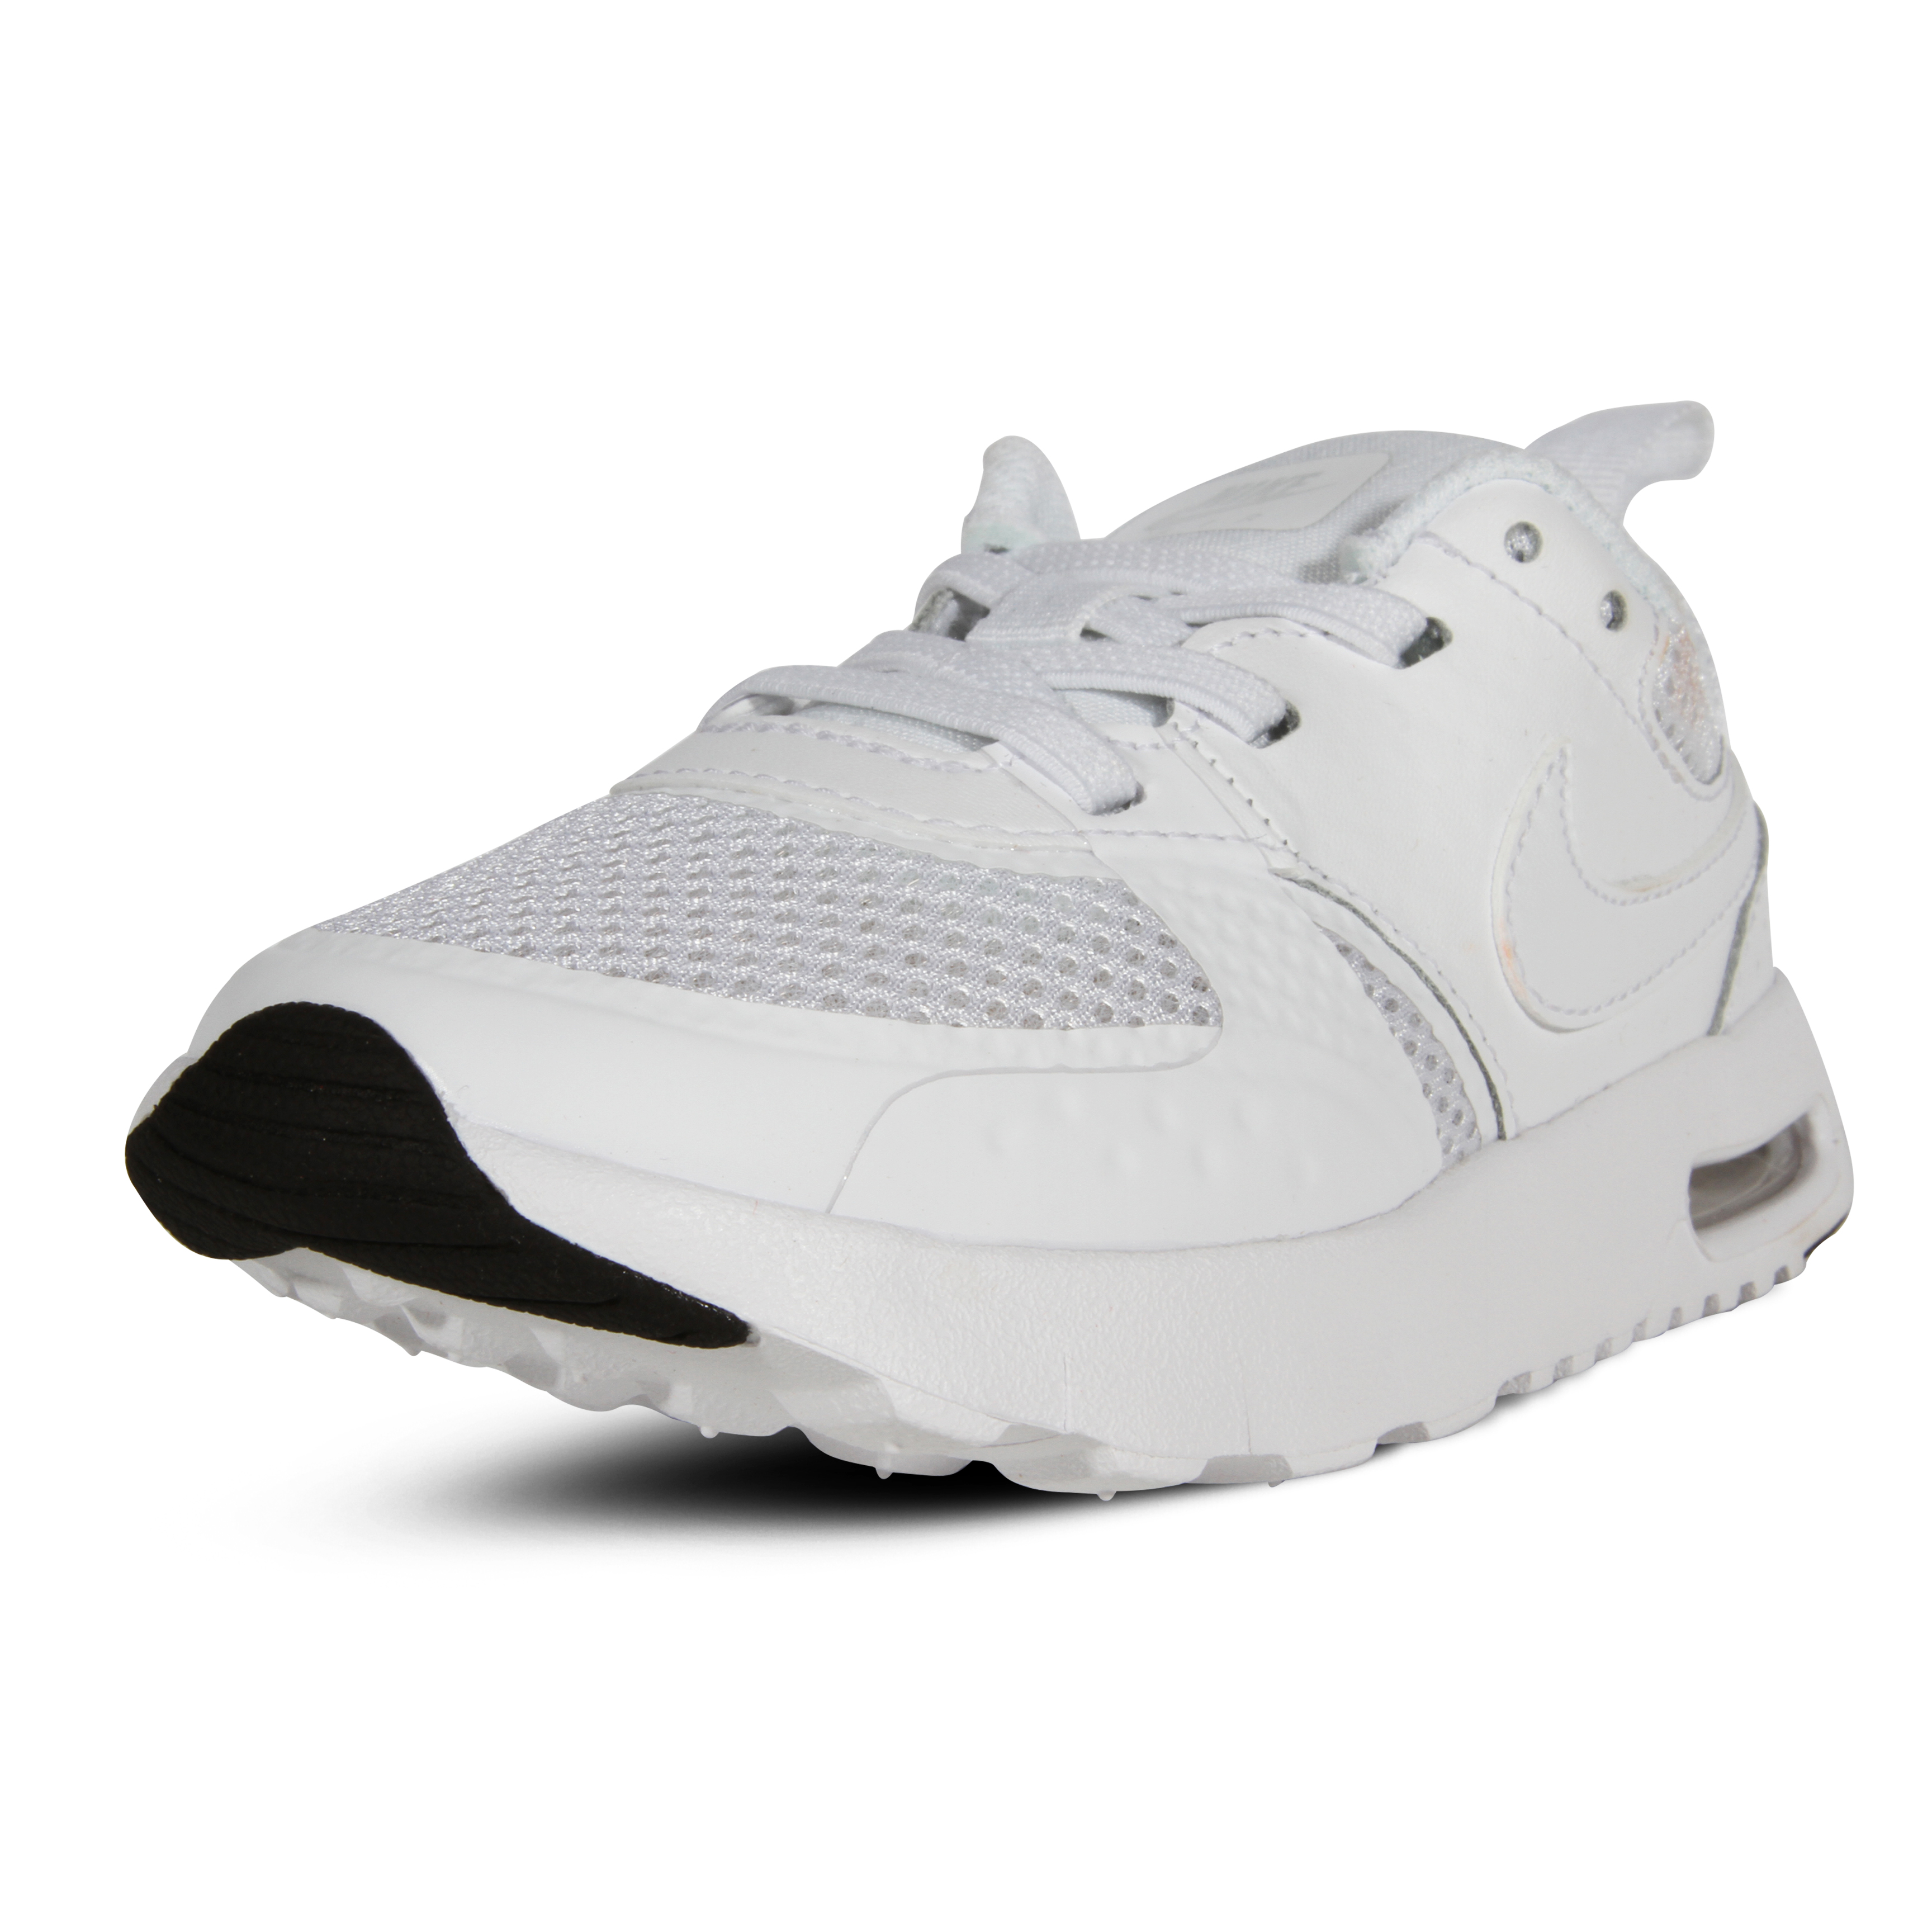 2ebaf3939d9 Boys  Nike Air Max Vision (TDE) Toddlers (Baby   Infant) Shoes 917860-100